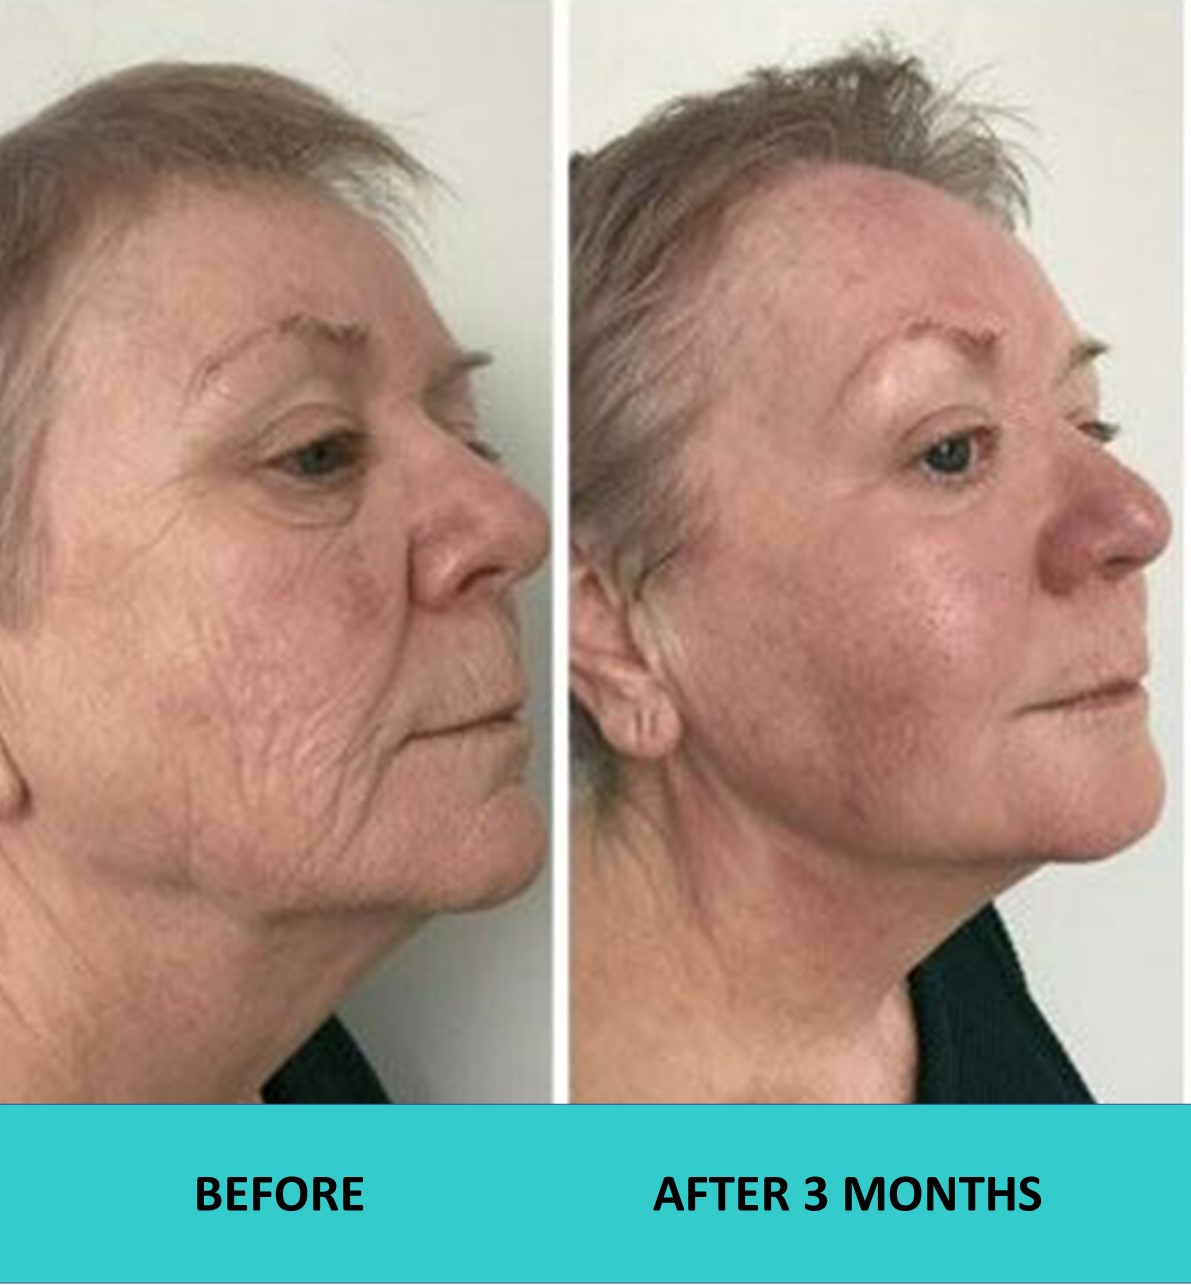 Fantastic results three months after the 4D HIFU face and neck treatment.